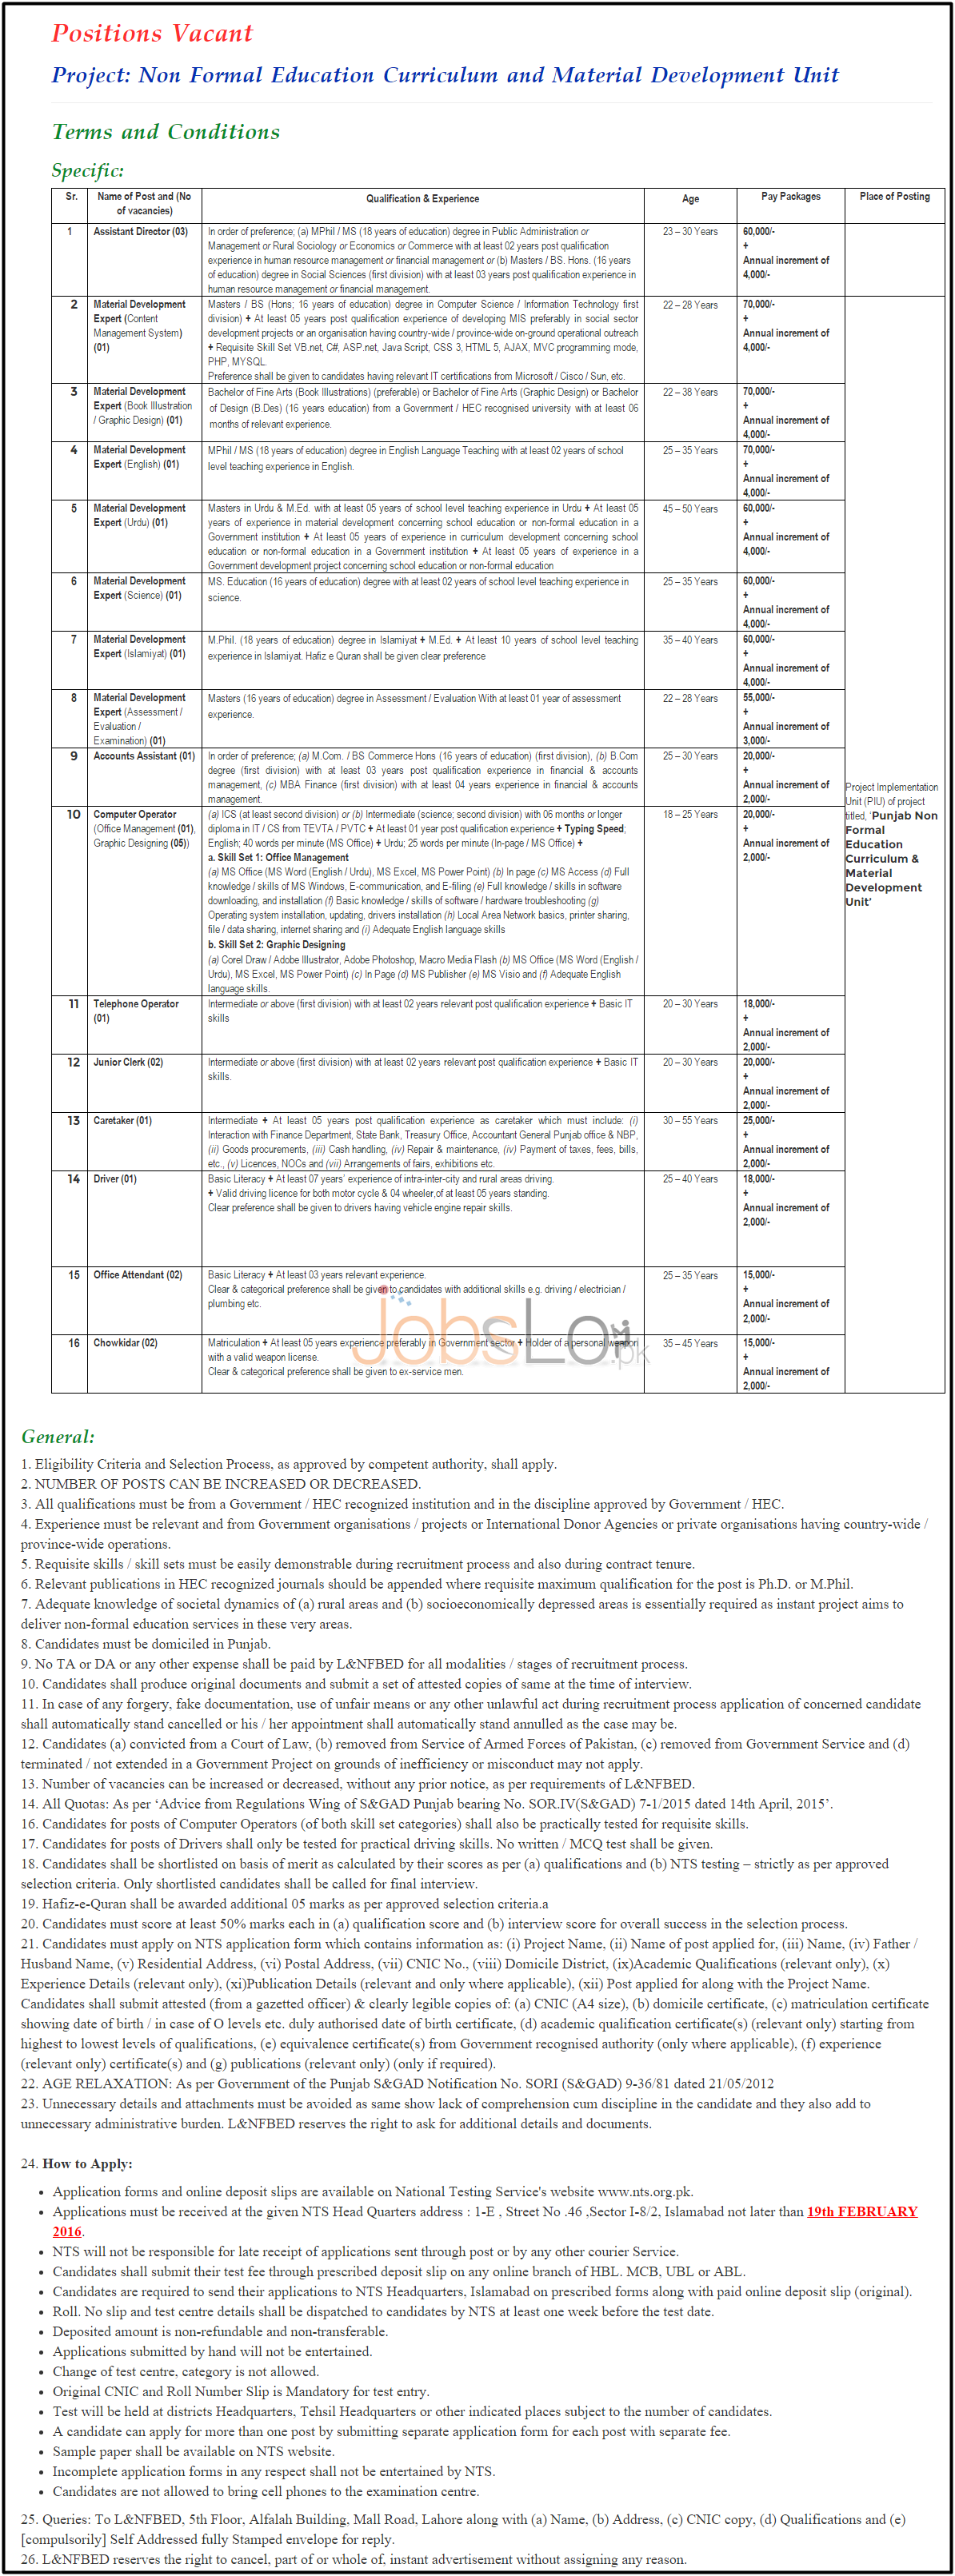 Literacy & NFBE Punjab 2016 Jobs Latest Advertisement